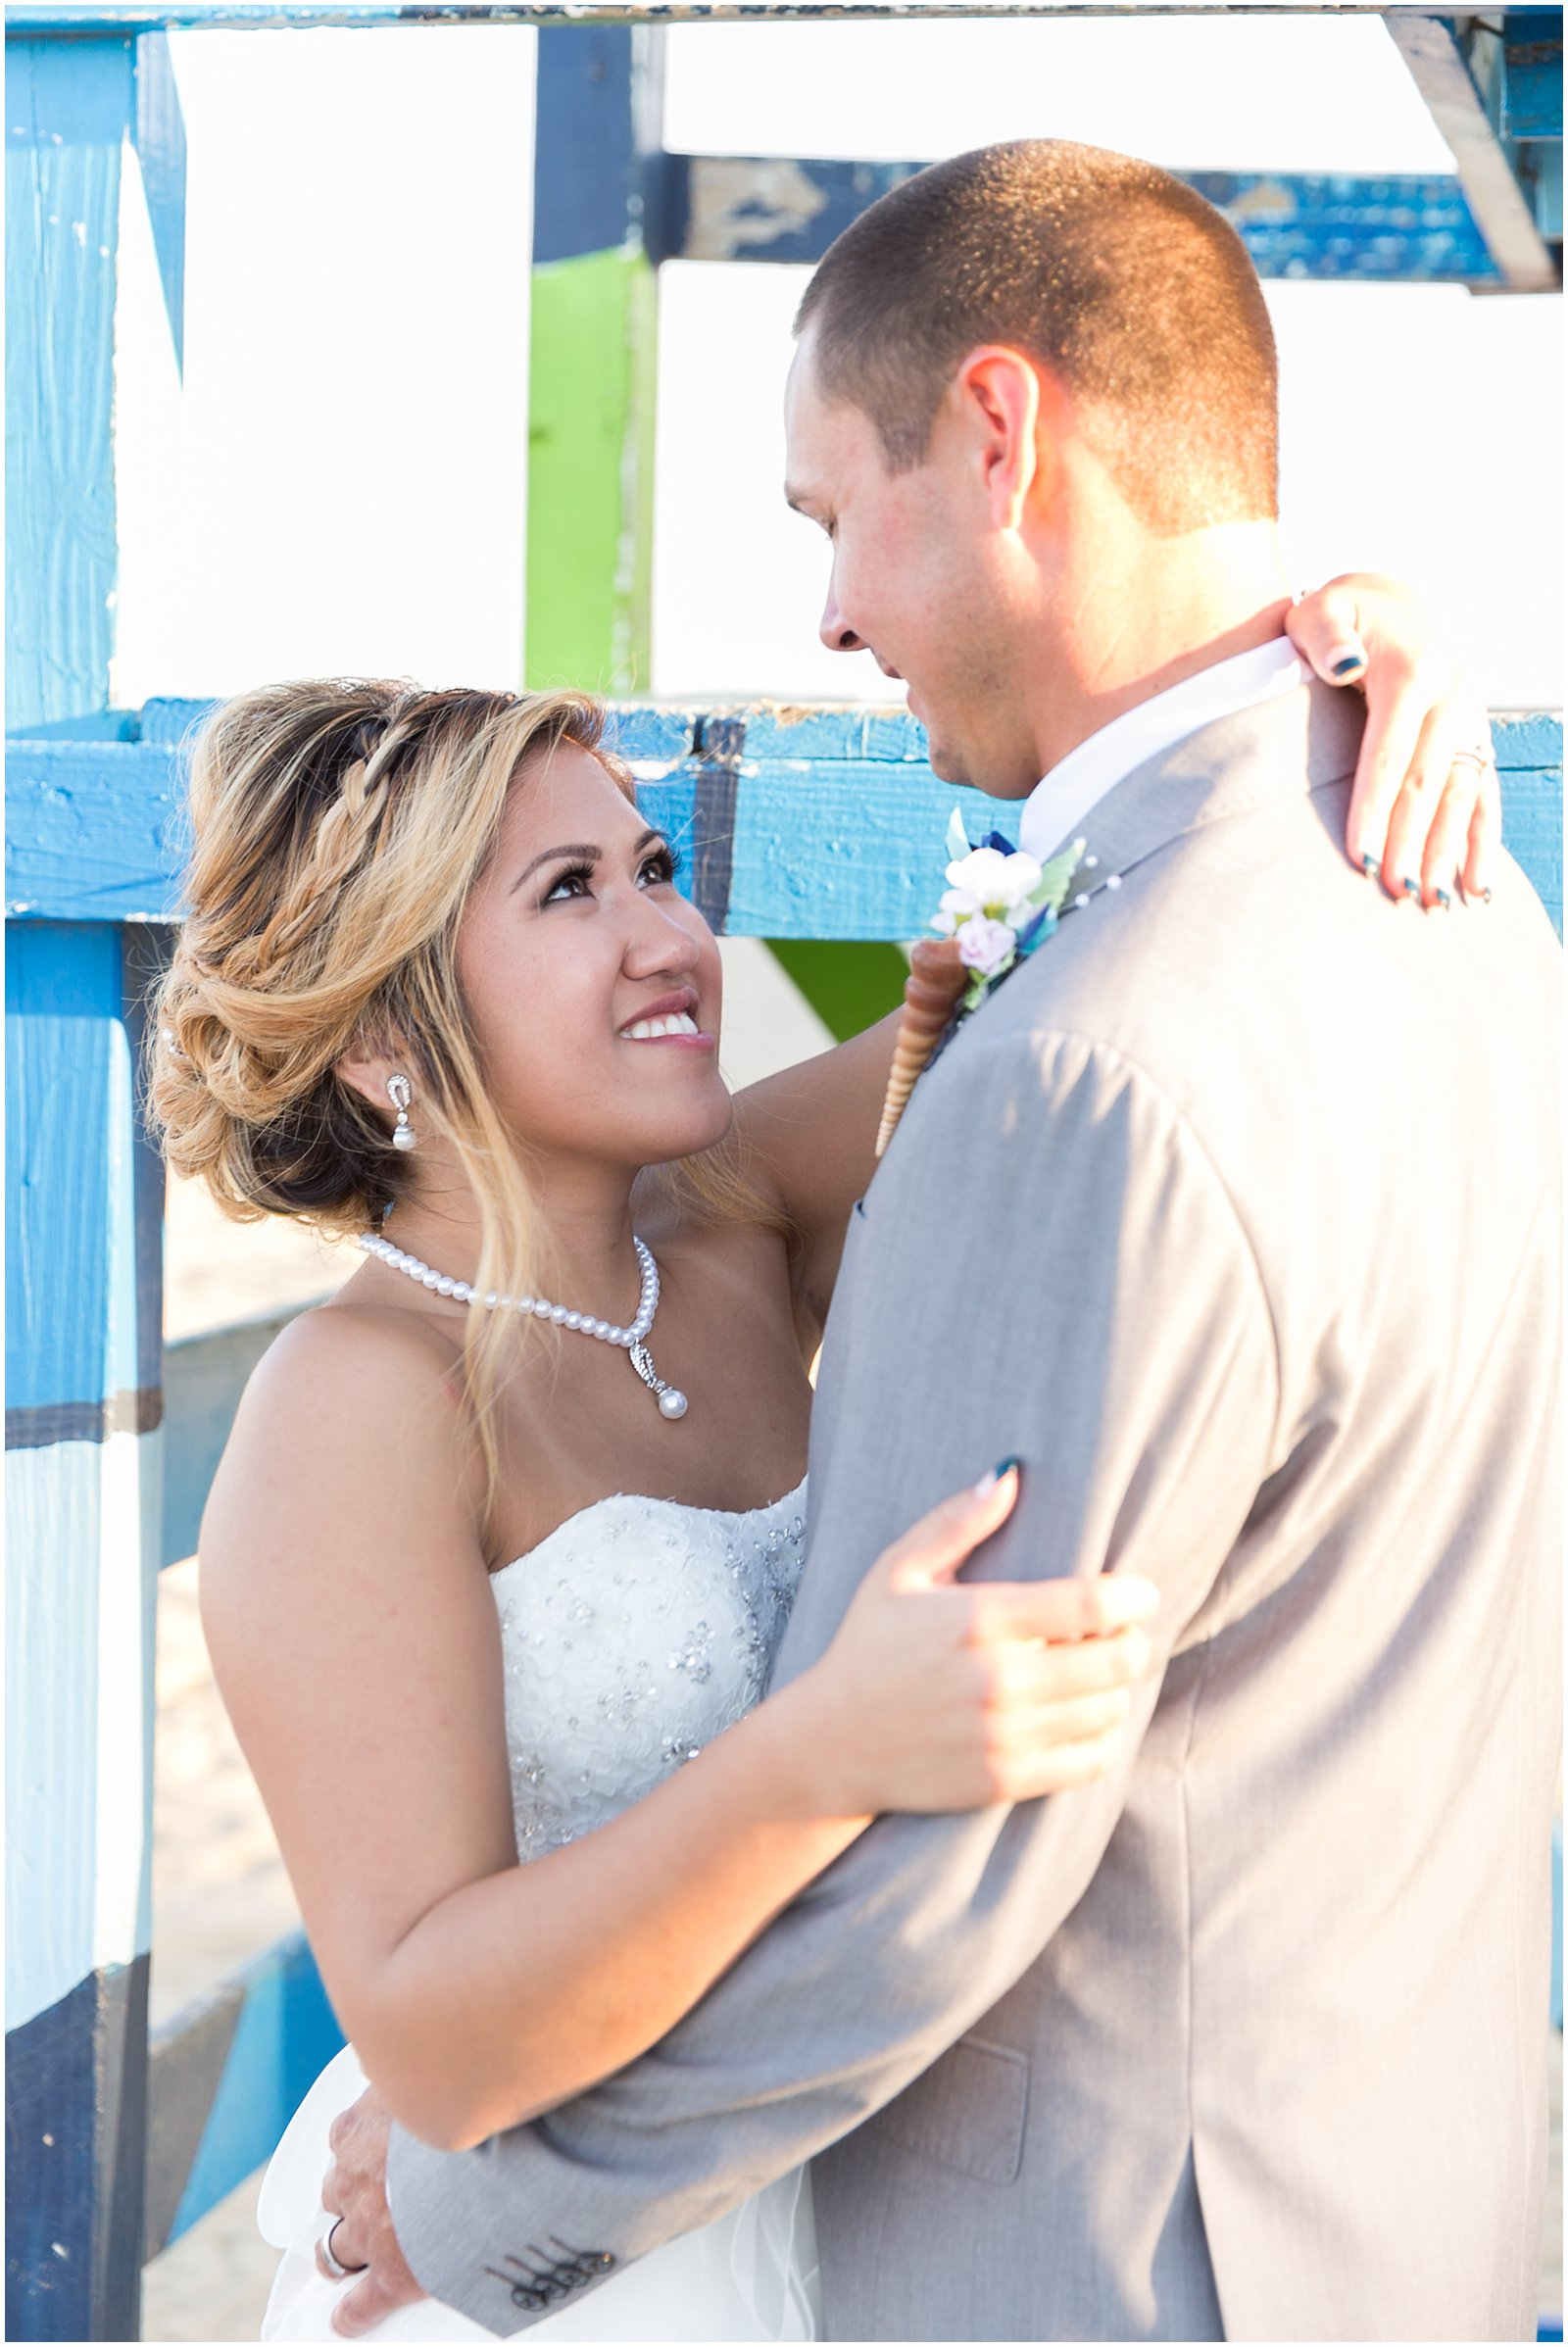 jessica_ryan_photography_wedding_virginia_beach_virginia_wedding_photographer_candid_wedding_photography_lifestyle_photojournalistic_real_moments_0125